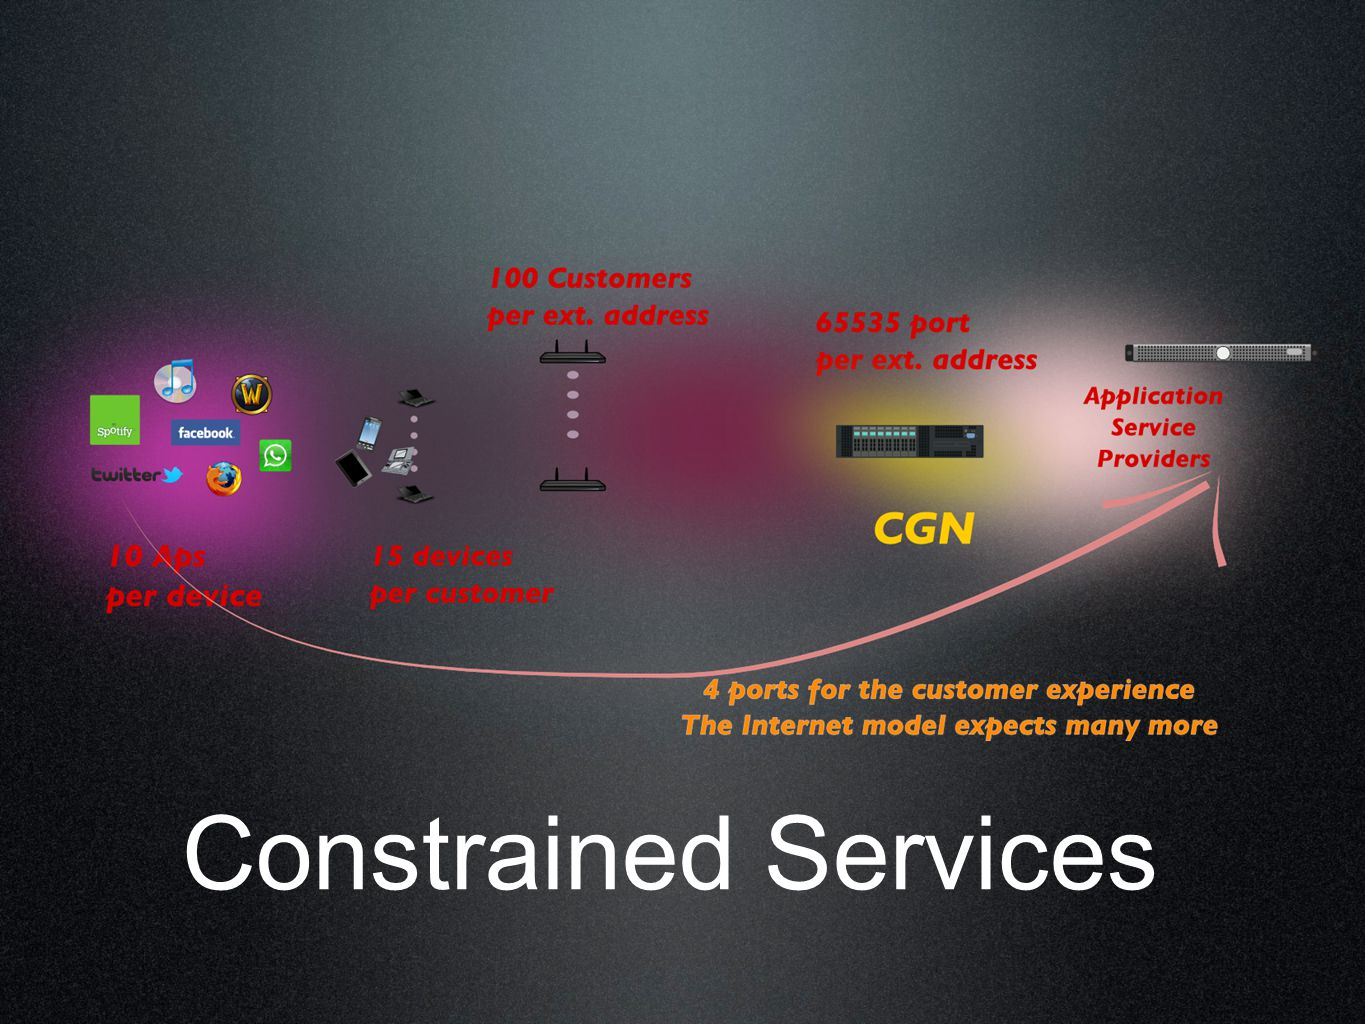 Constrained Services